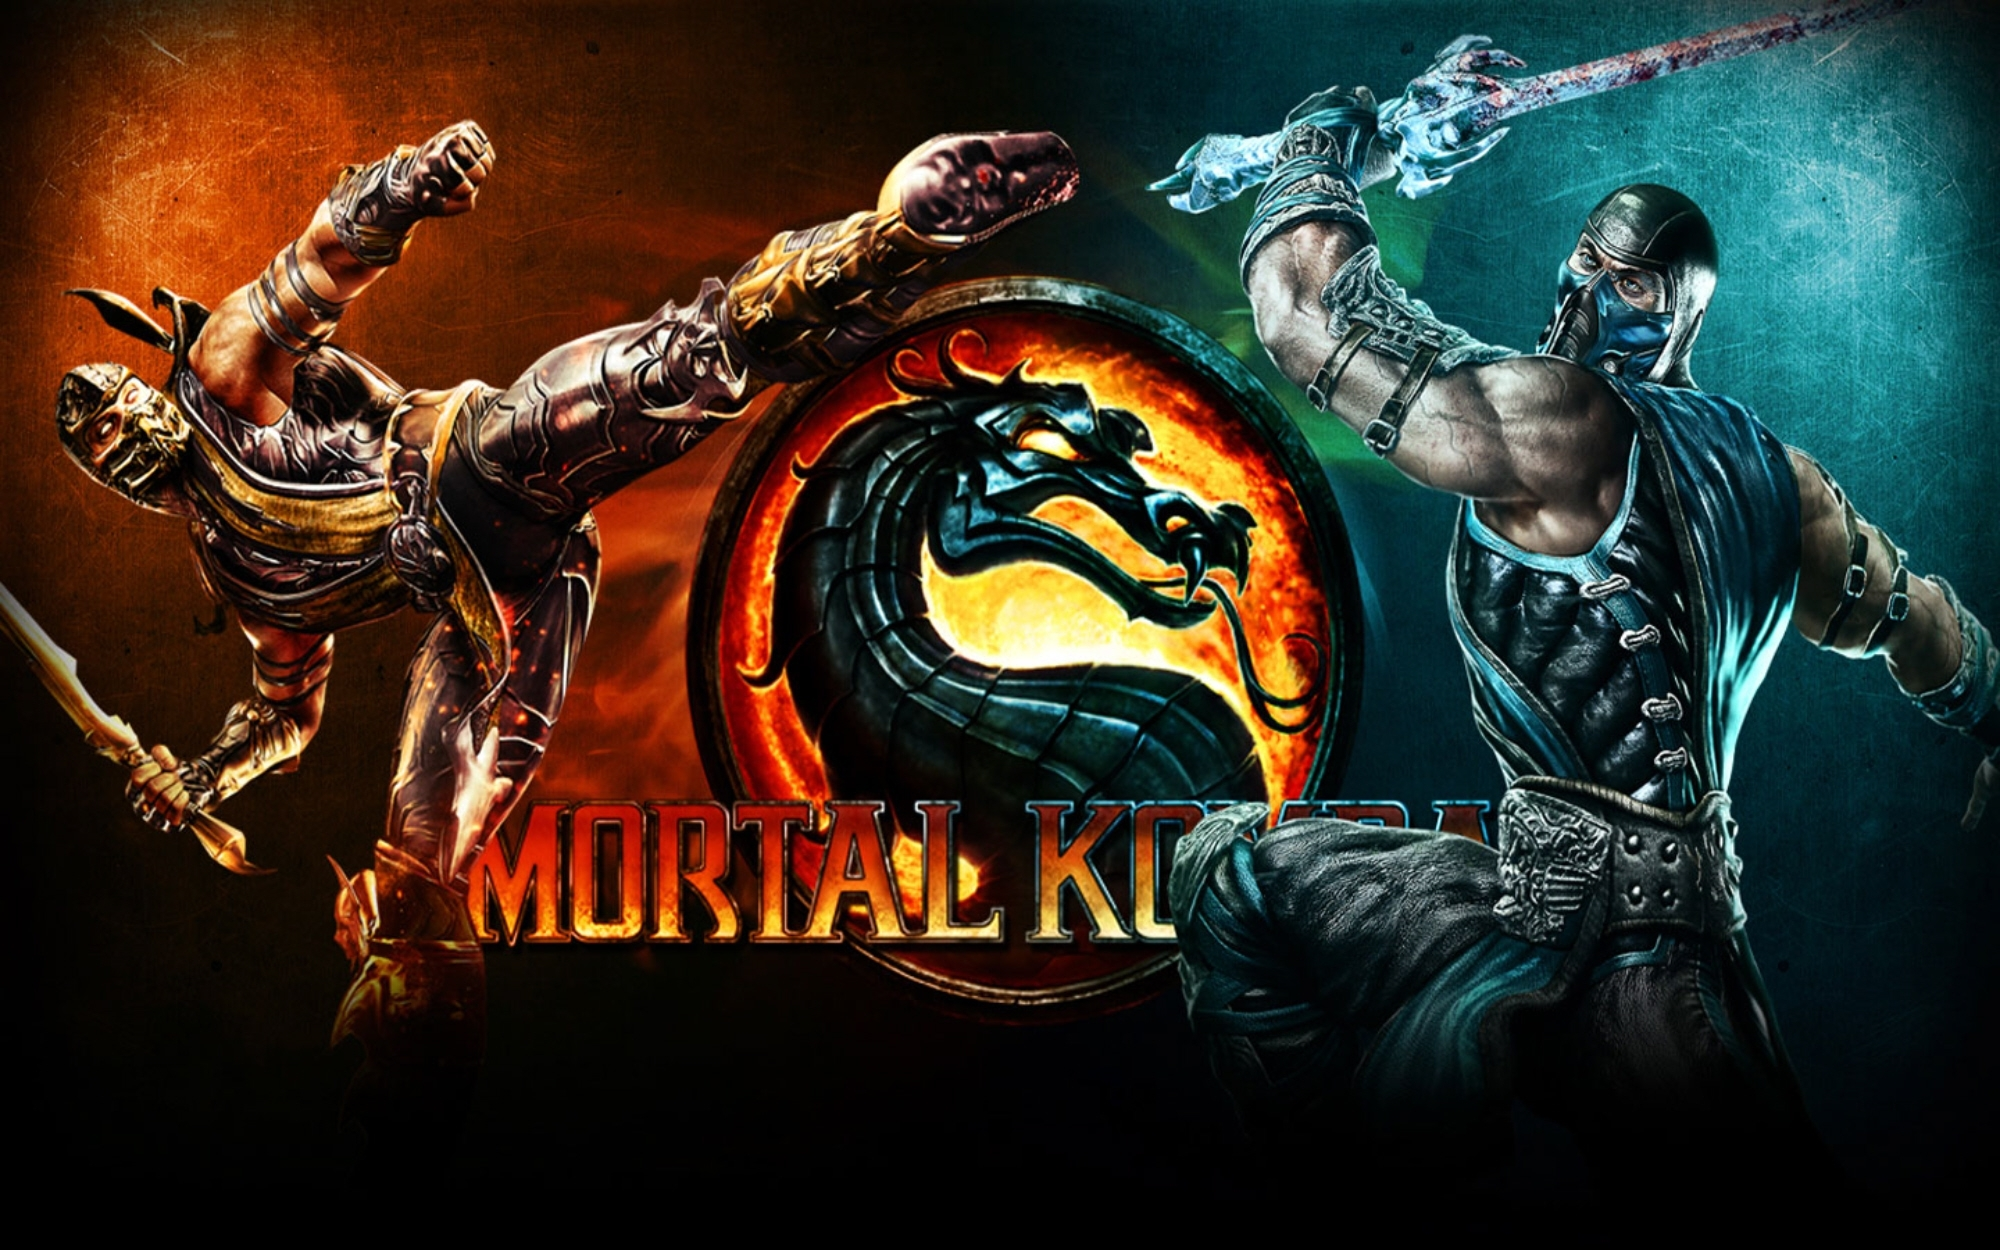 mortal kombat wallpapers - bdfjade